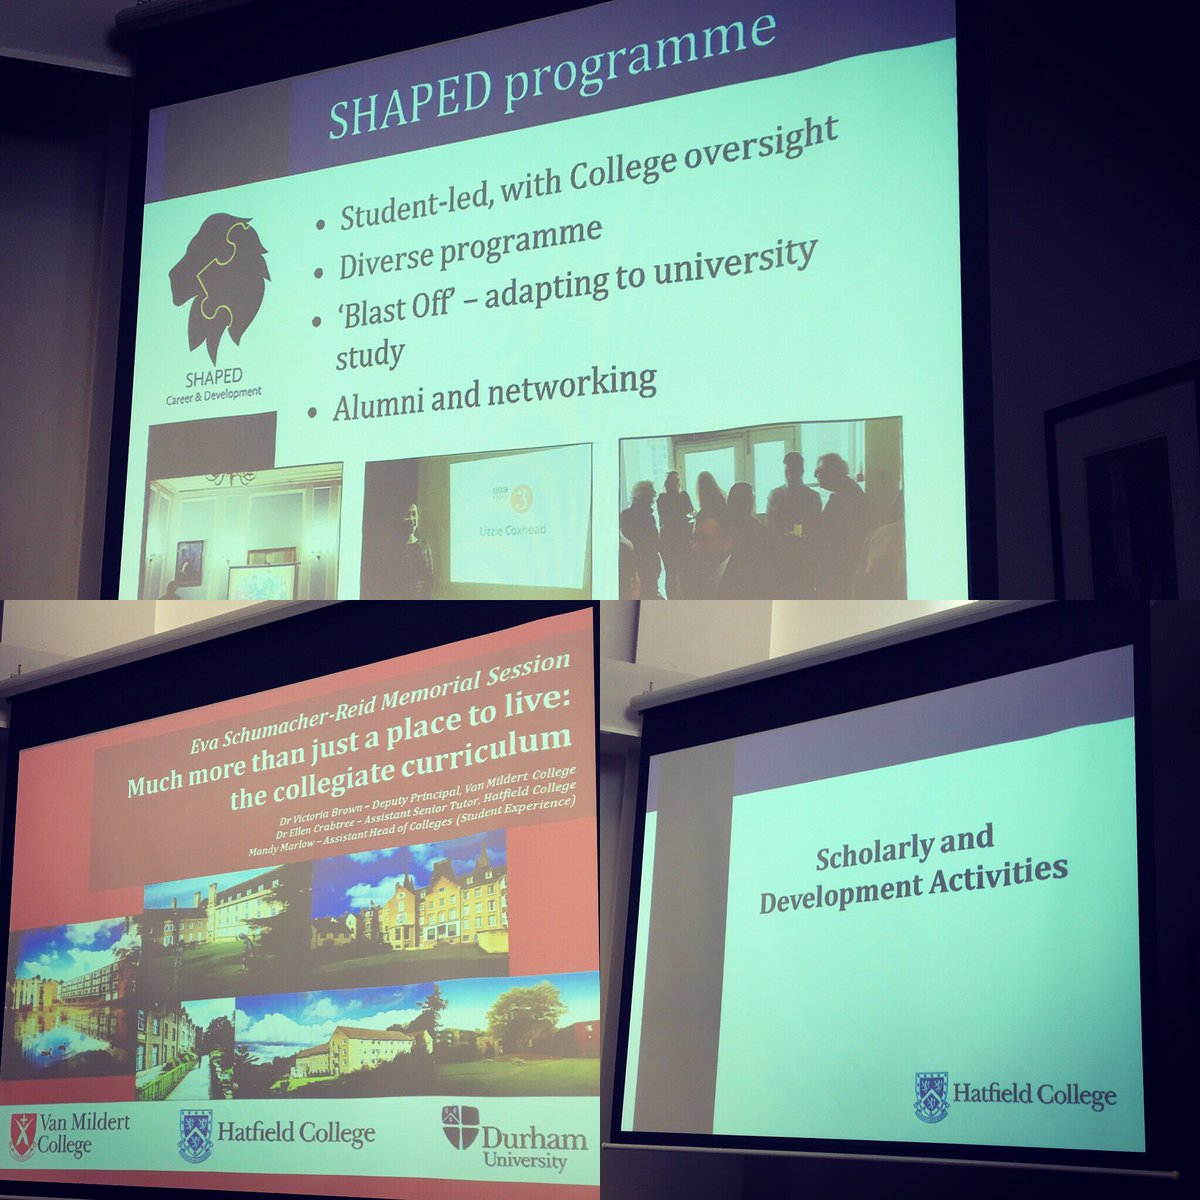 Sharing the exciting #scholarly &amp; #development activities on offer at Hatfield @durham_uni Learning &amp; Teaching conference today <br>http://pic.twitter.com/msG6UY13ws